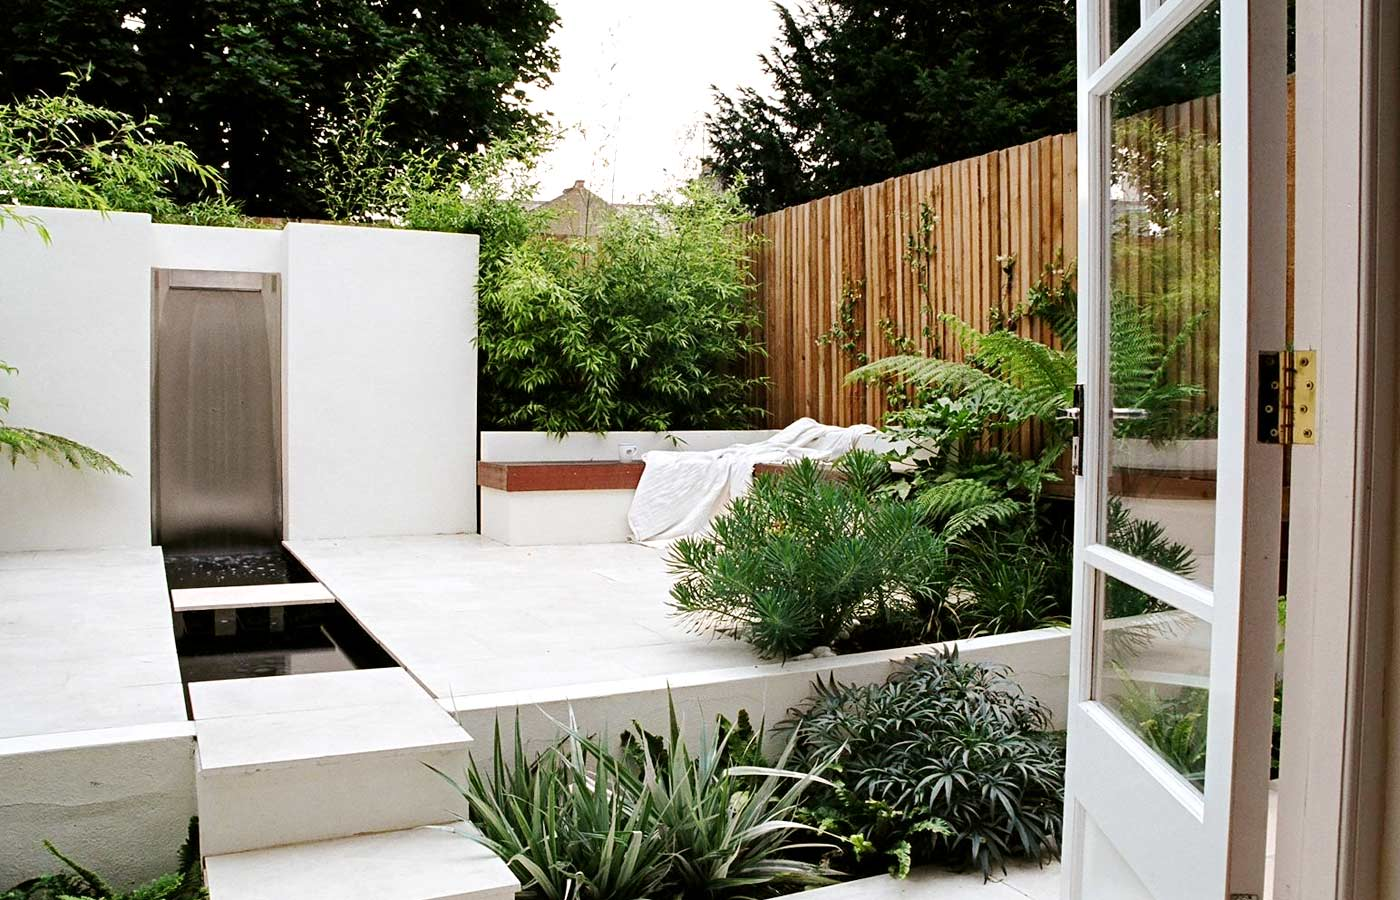 Small urban garden design garden design st albans for Small garden design pictures